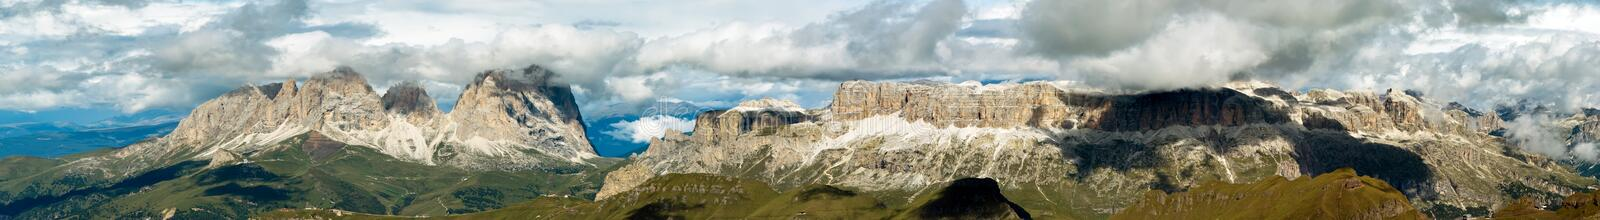 Panorama from Marmolada mountain, Italy stock images